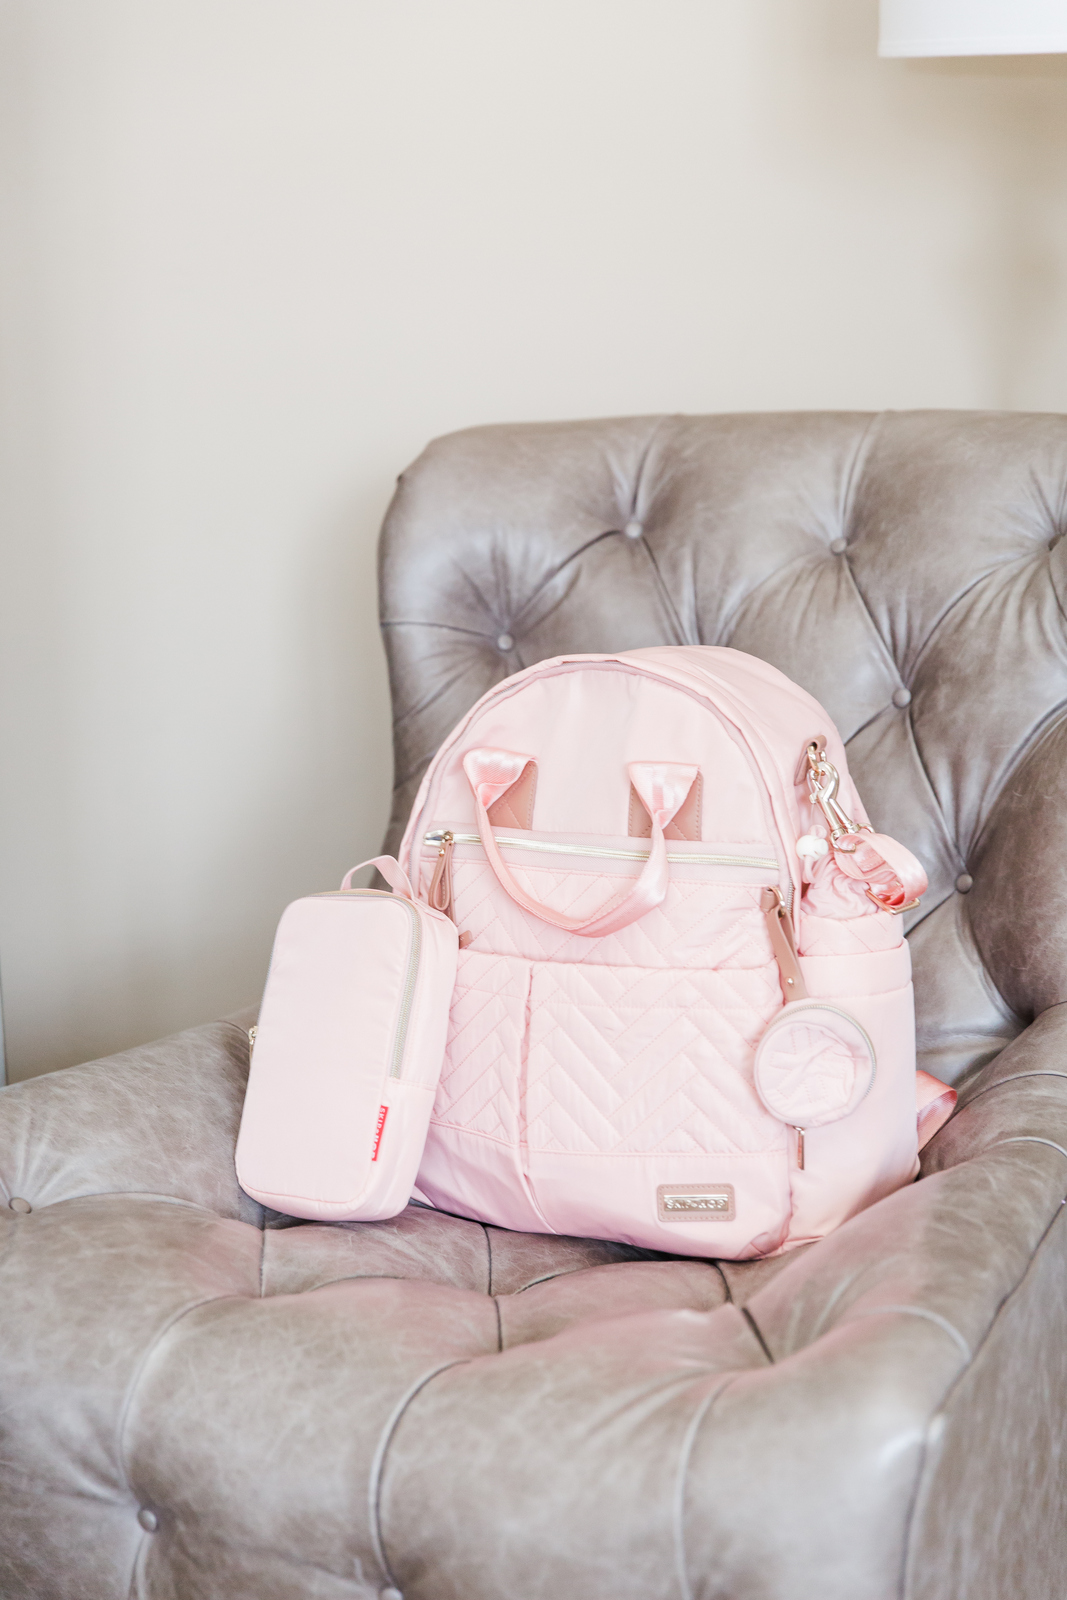 Skip Hop Suite Designer Diaper Bags: the backpack